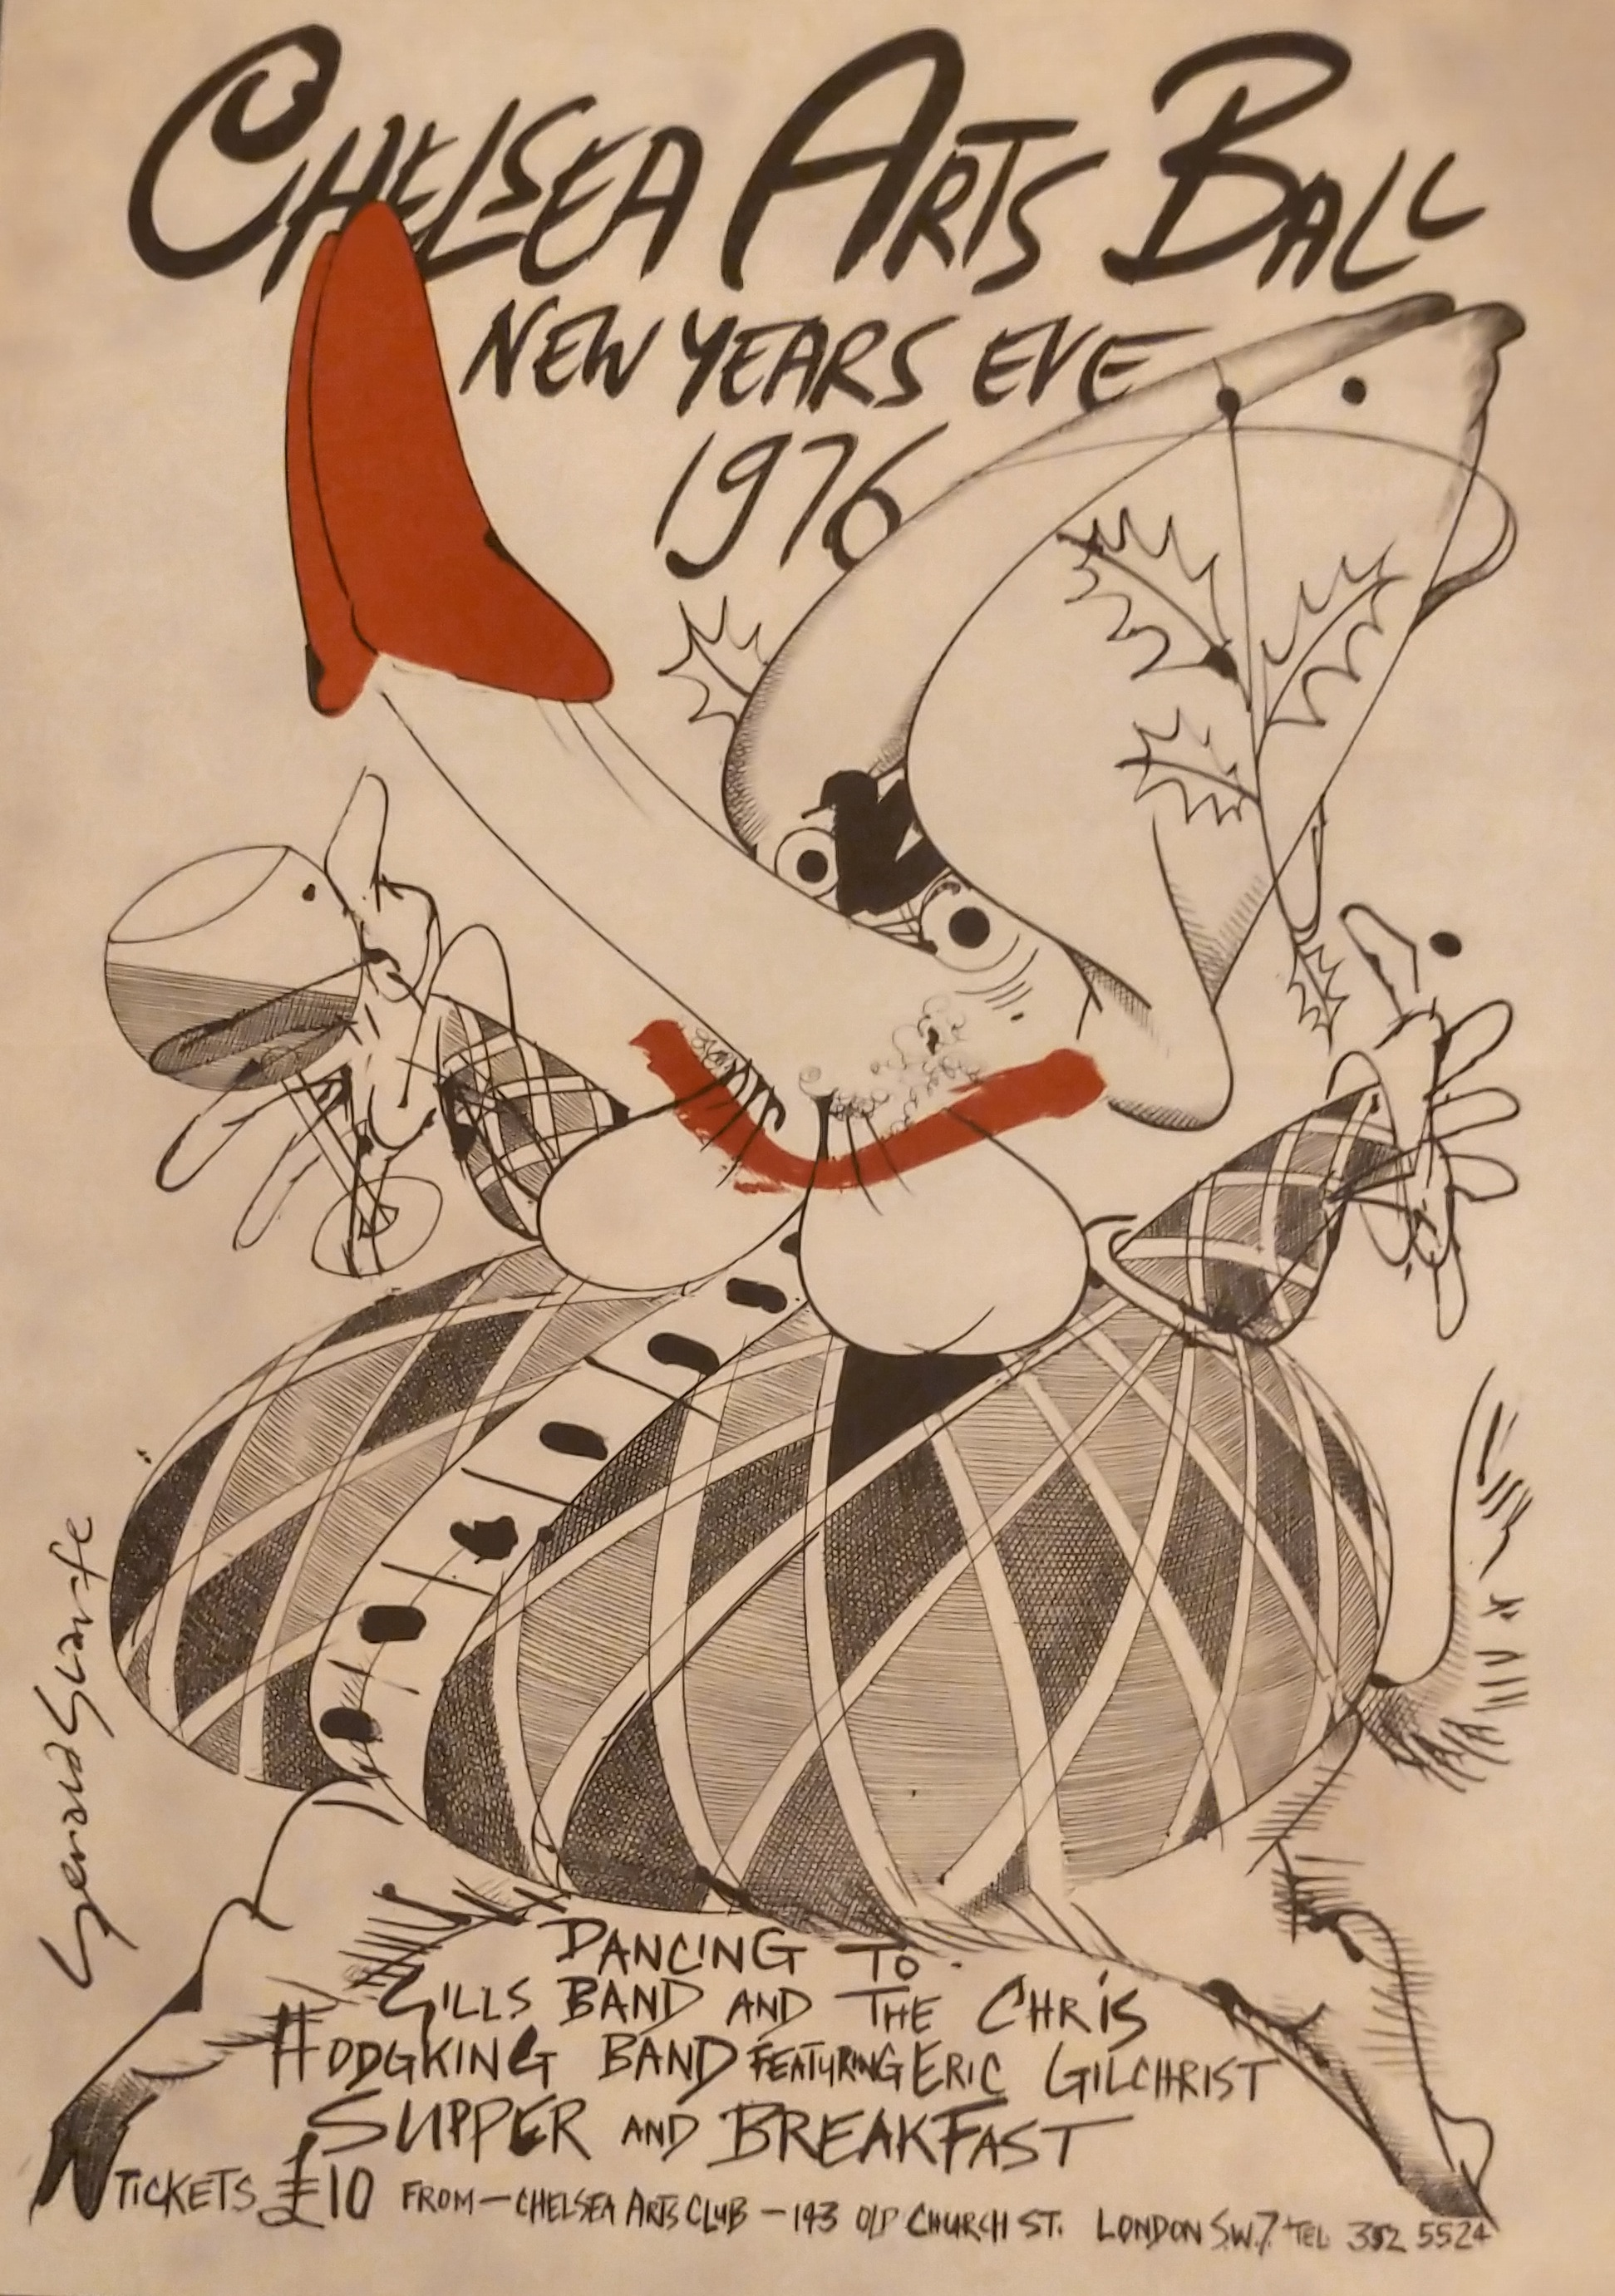 Gerald Scarfe designed poster for the Chelsea Arts Club Ball New Years Eve 1976